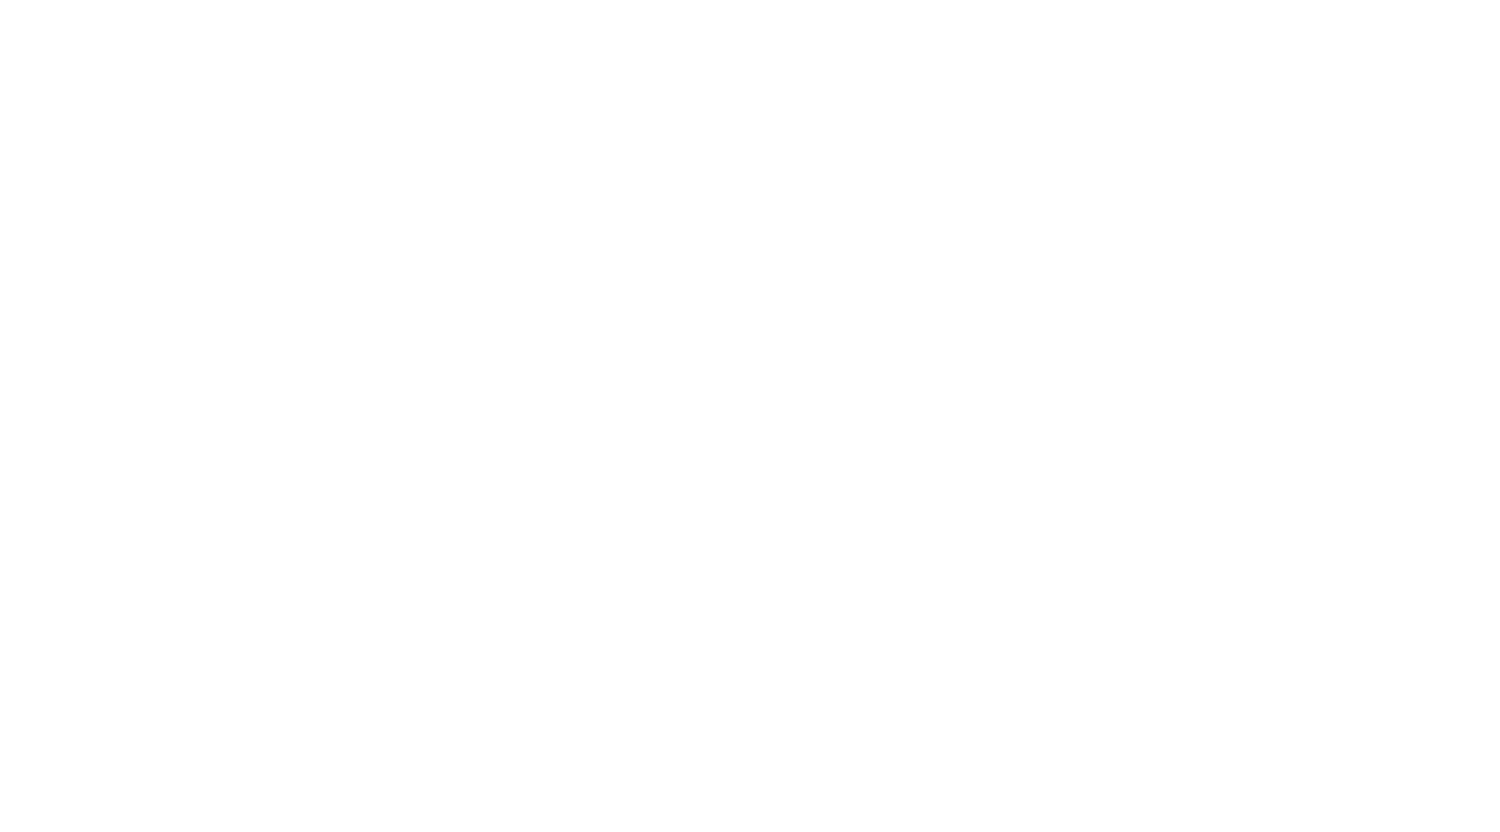 The Gongoliers